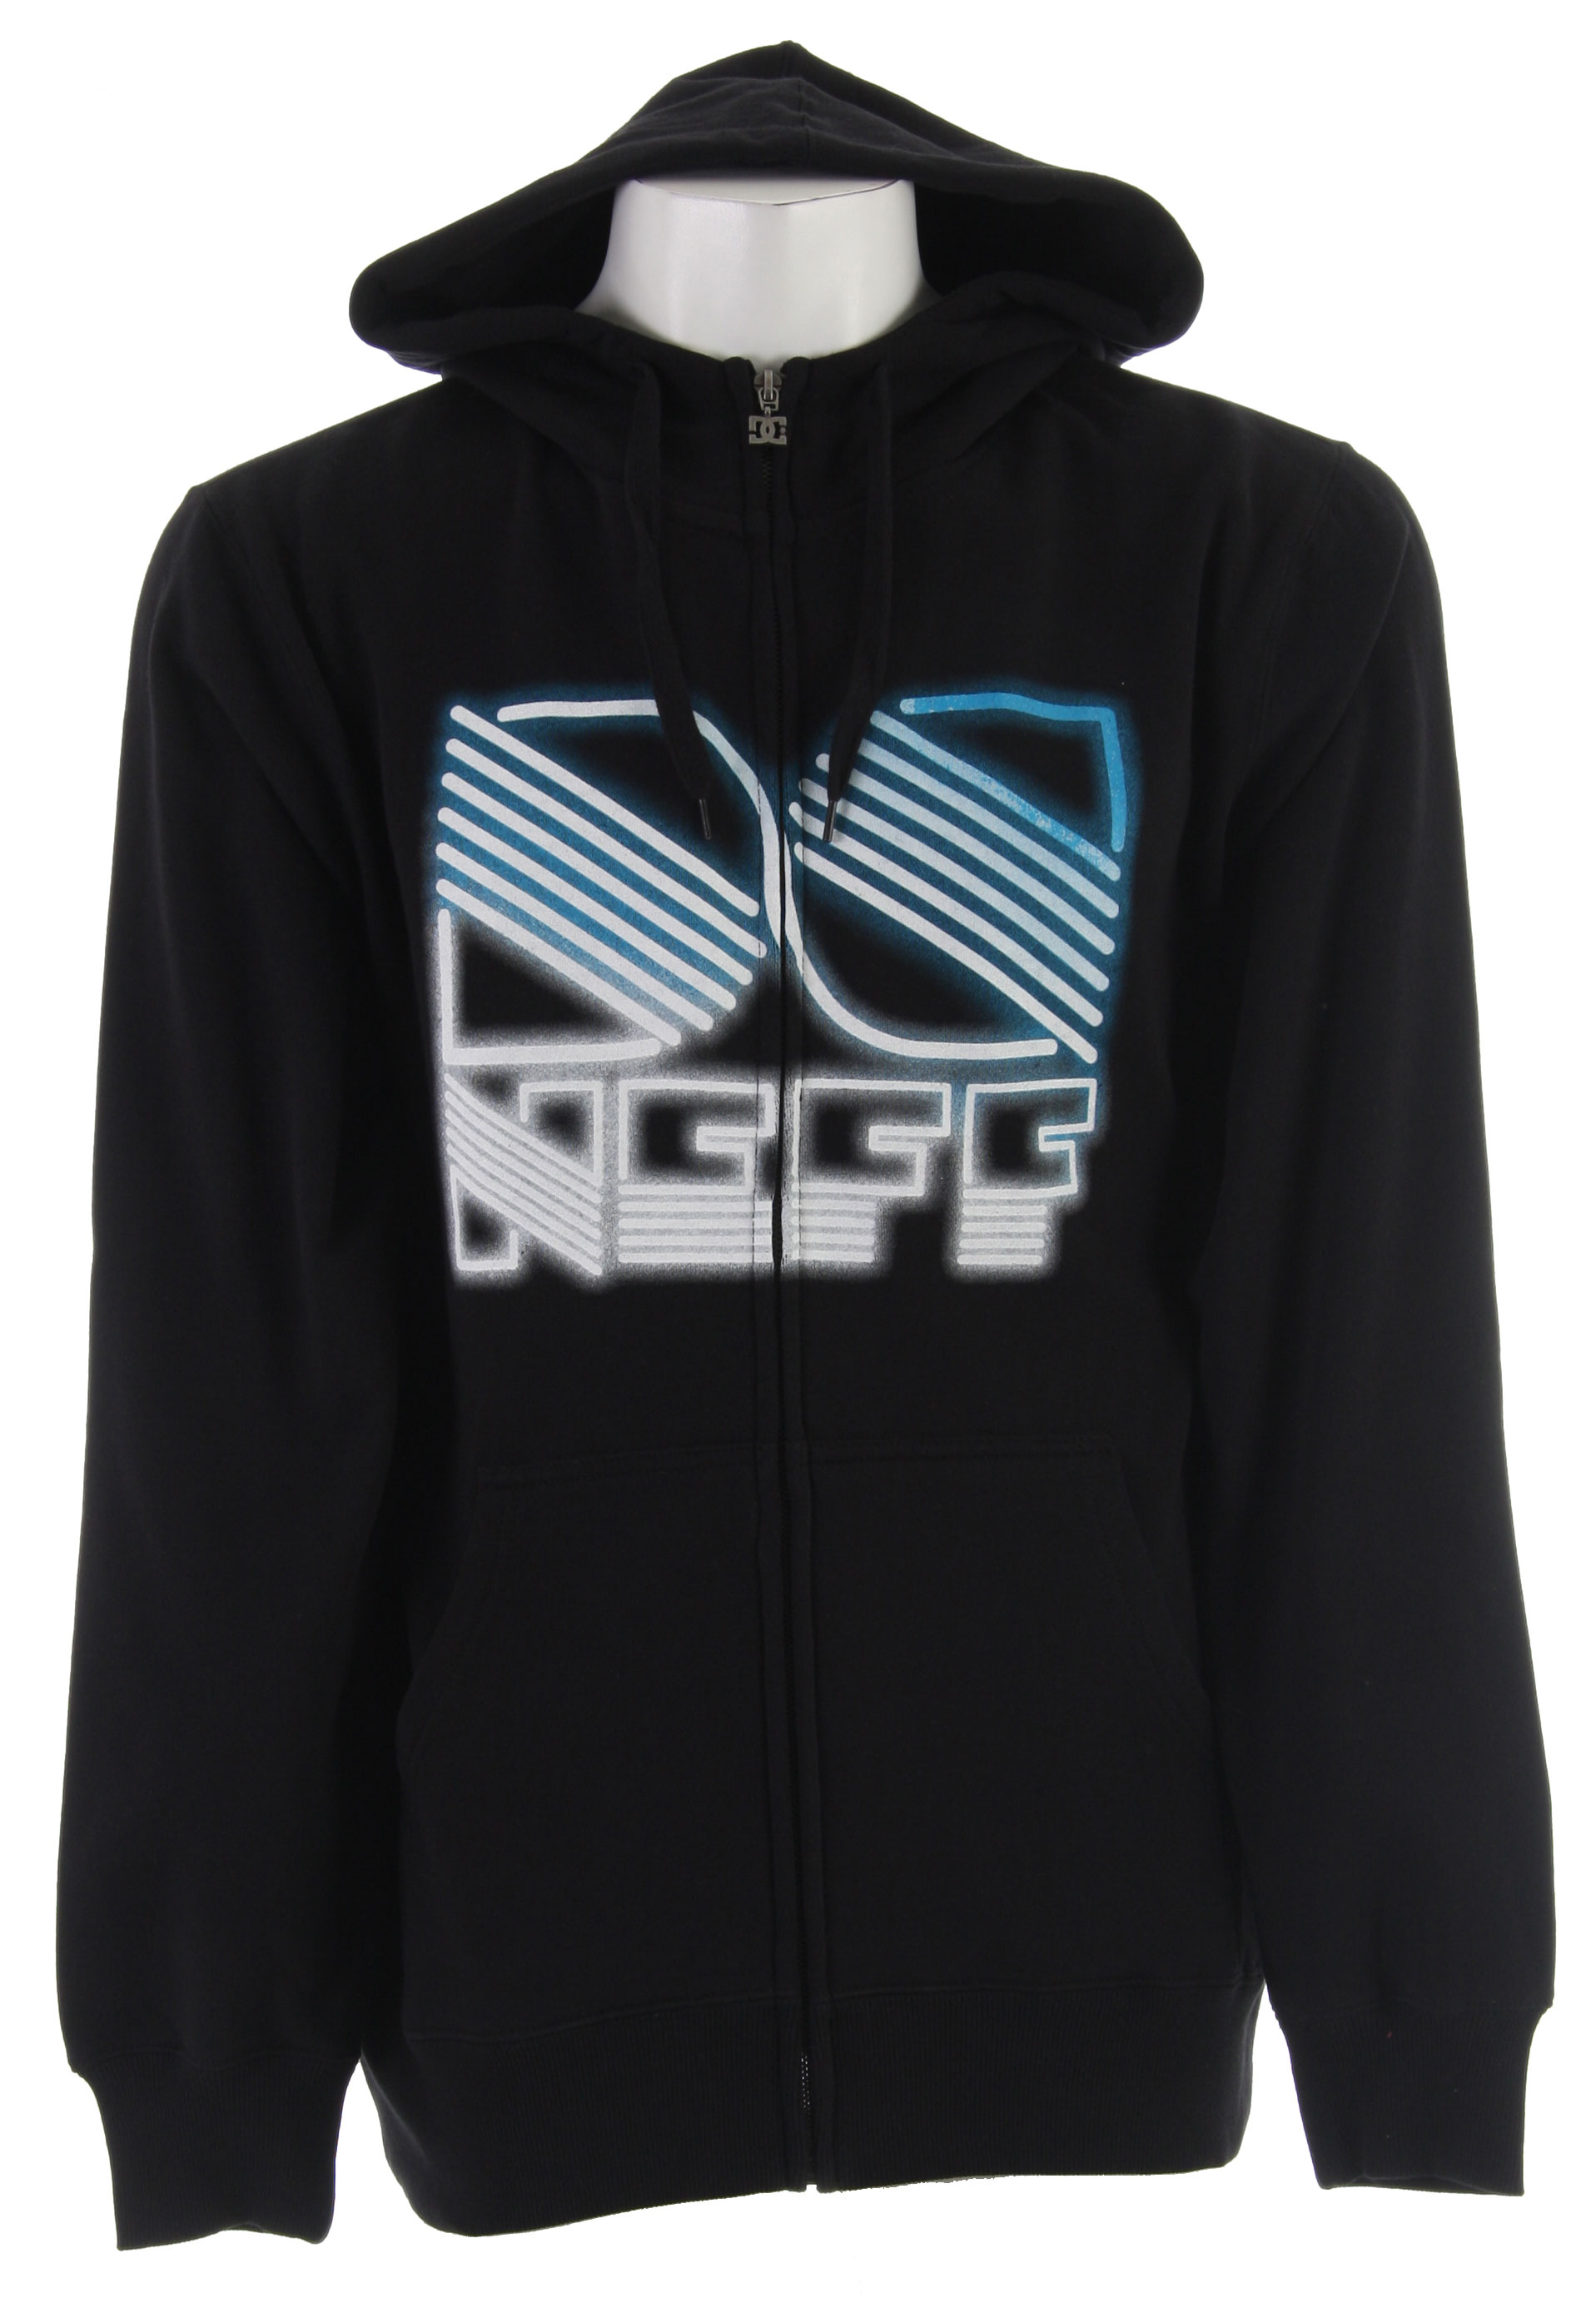 Skateboard Word is that you 'volunteered' to bring radically awesome style back to the streets, mountain, park, and Thanksgiving dinner. This collaboration hoodie will not be around for ever so get your while they last.Key Features of the DC Neff Hooded Hoodie Black:Custom DC/NEFF graphics 80% Cotton 20% polyester 330 gm Full zip Fleece lined hoodie - $27.95